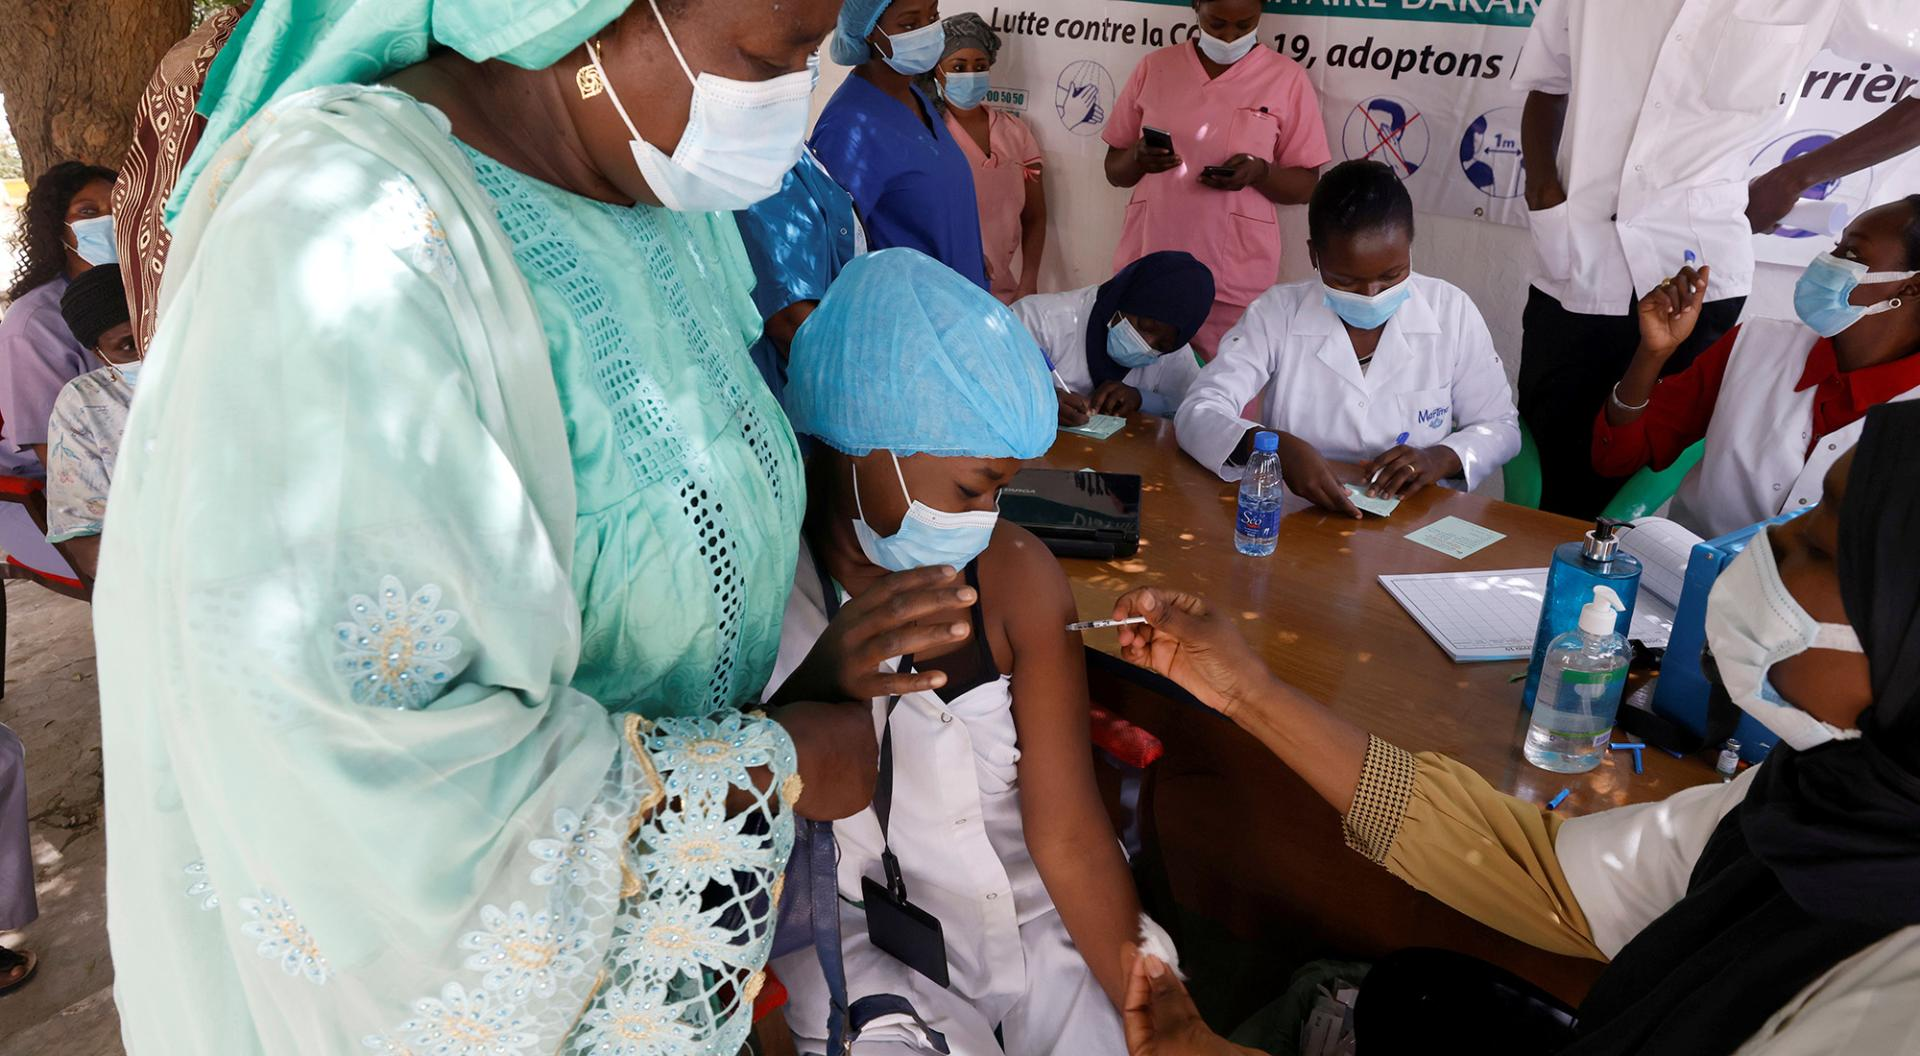 A health worker reacts as she receives a dose of coronavirus disease (COVID-19) vaccine in Dakar, Senegal